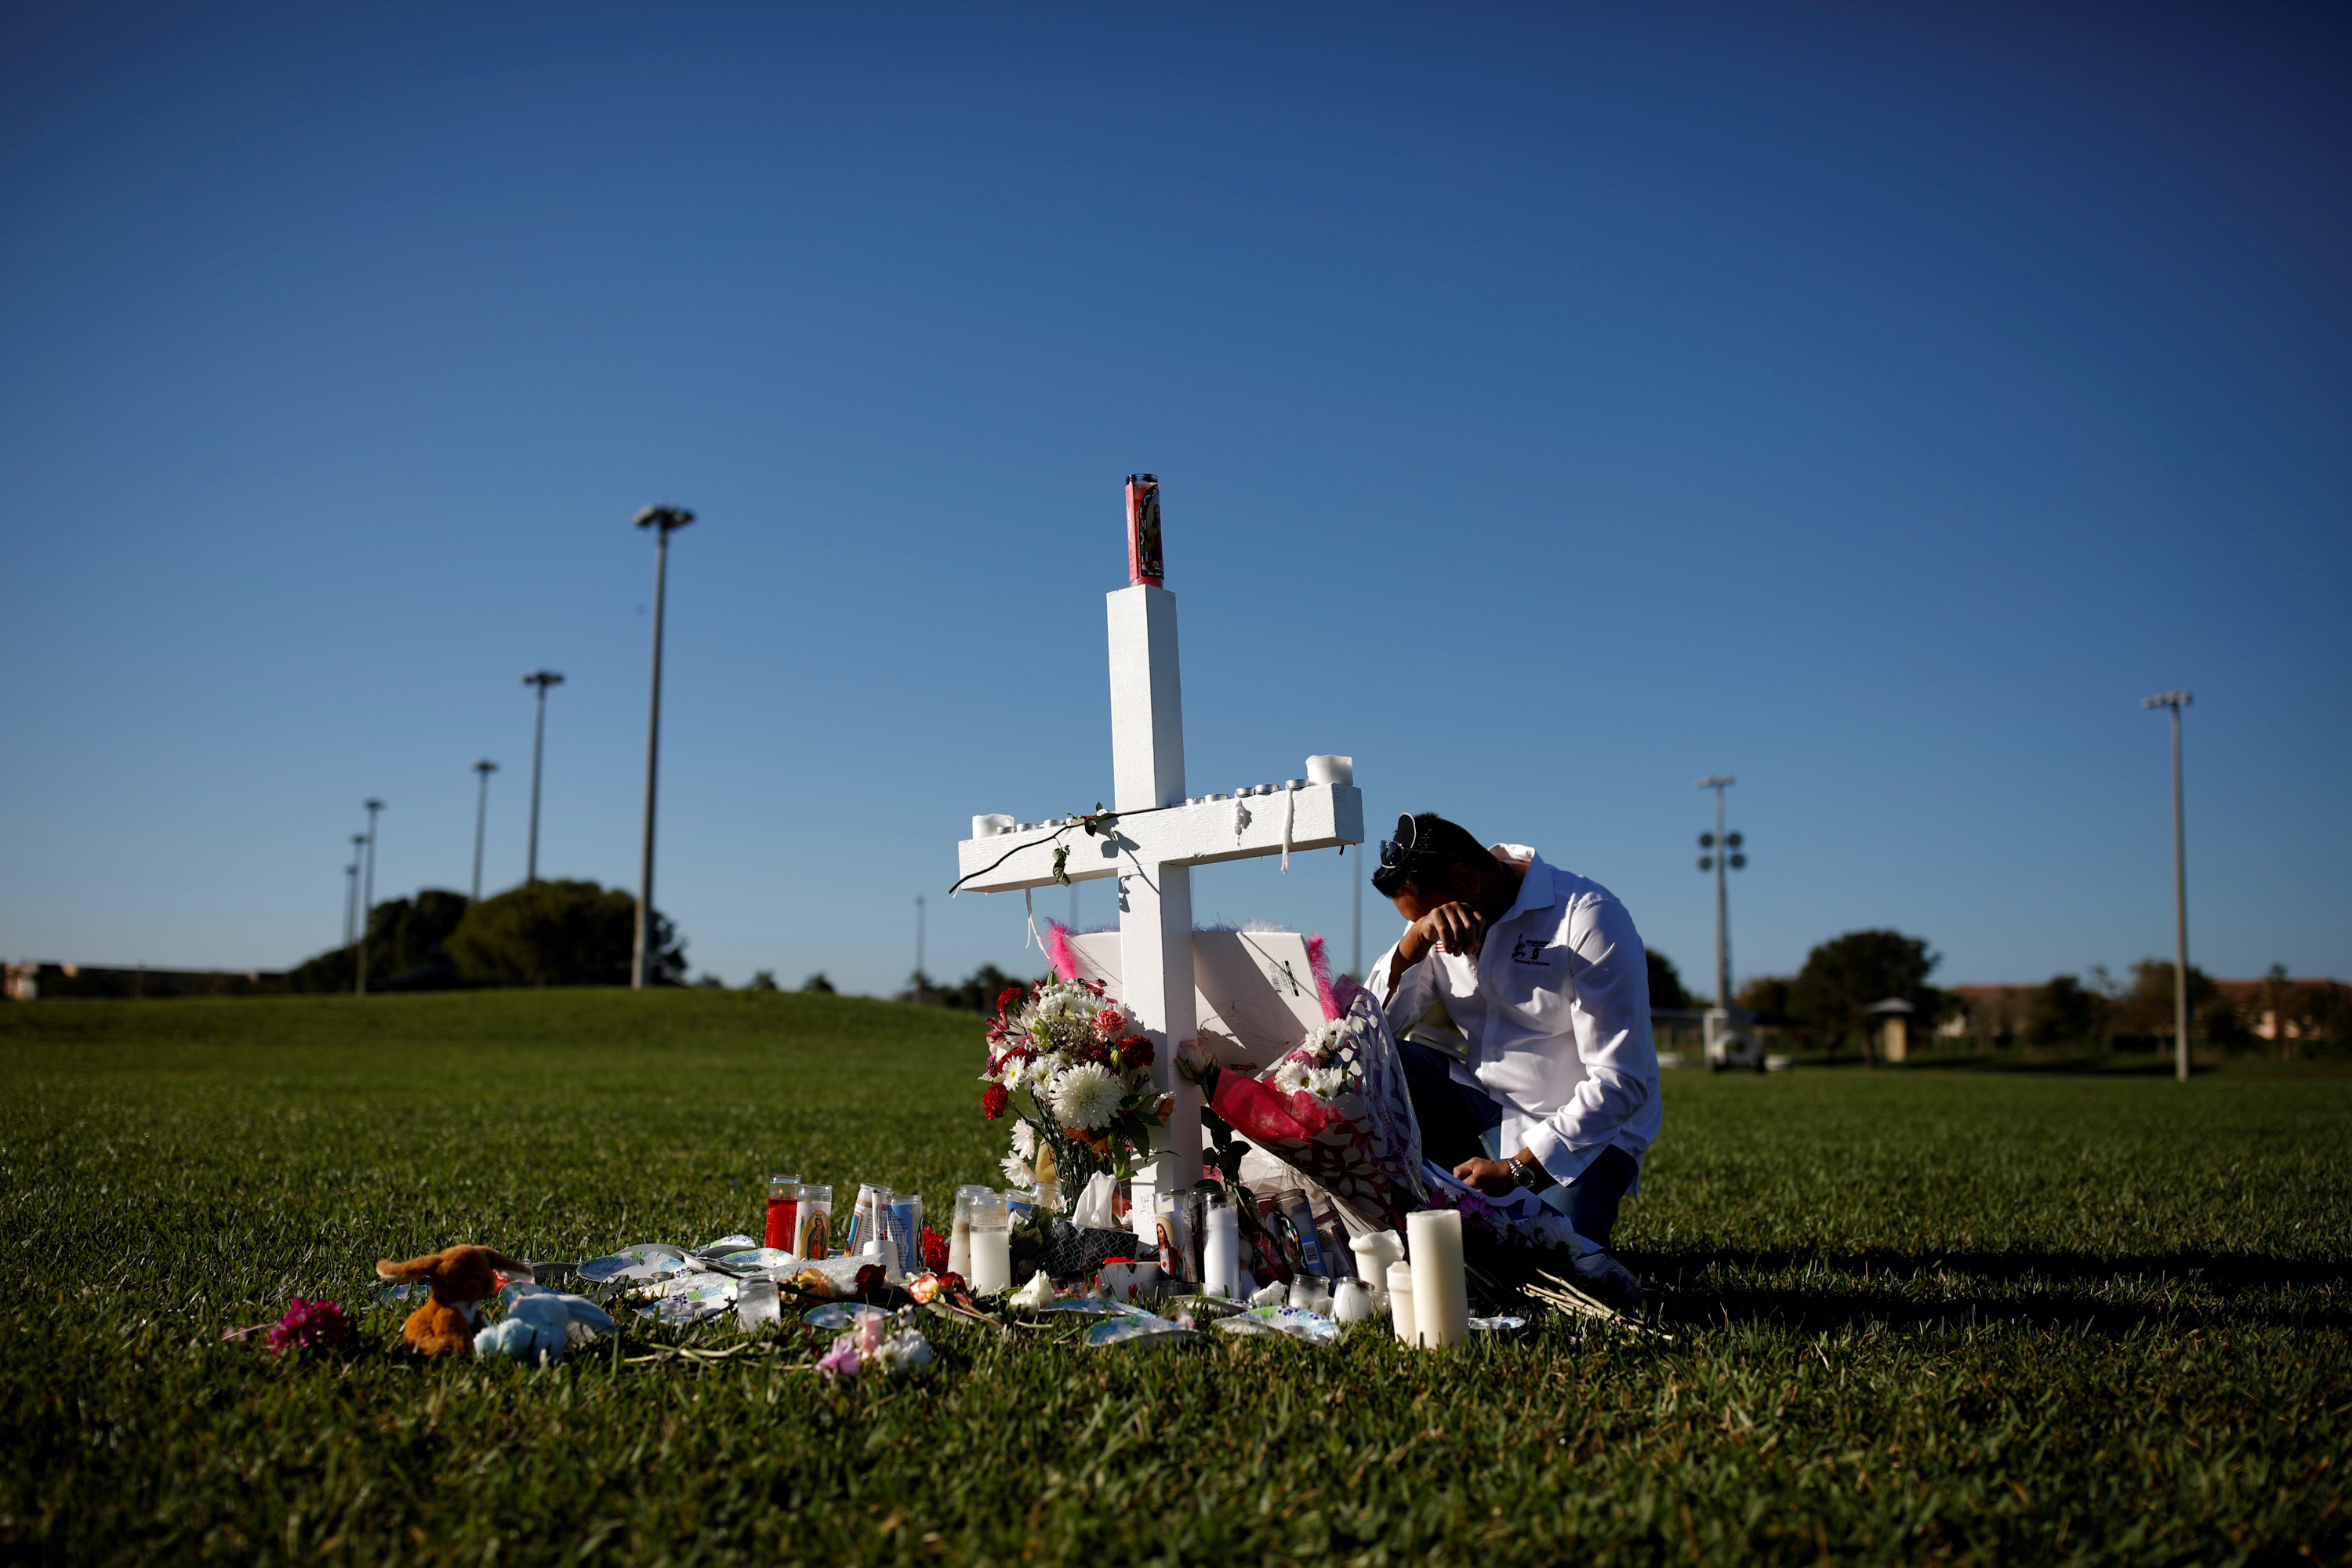 Joe Zevuloni mourns in front of a cross placed in a park to commemorate the victims of the shooting at Marjory Stoneman Douglas High School, in Parkland, Florida, U.S., February 16, 2018. REUTERS/Carlos Garcia Rawlins